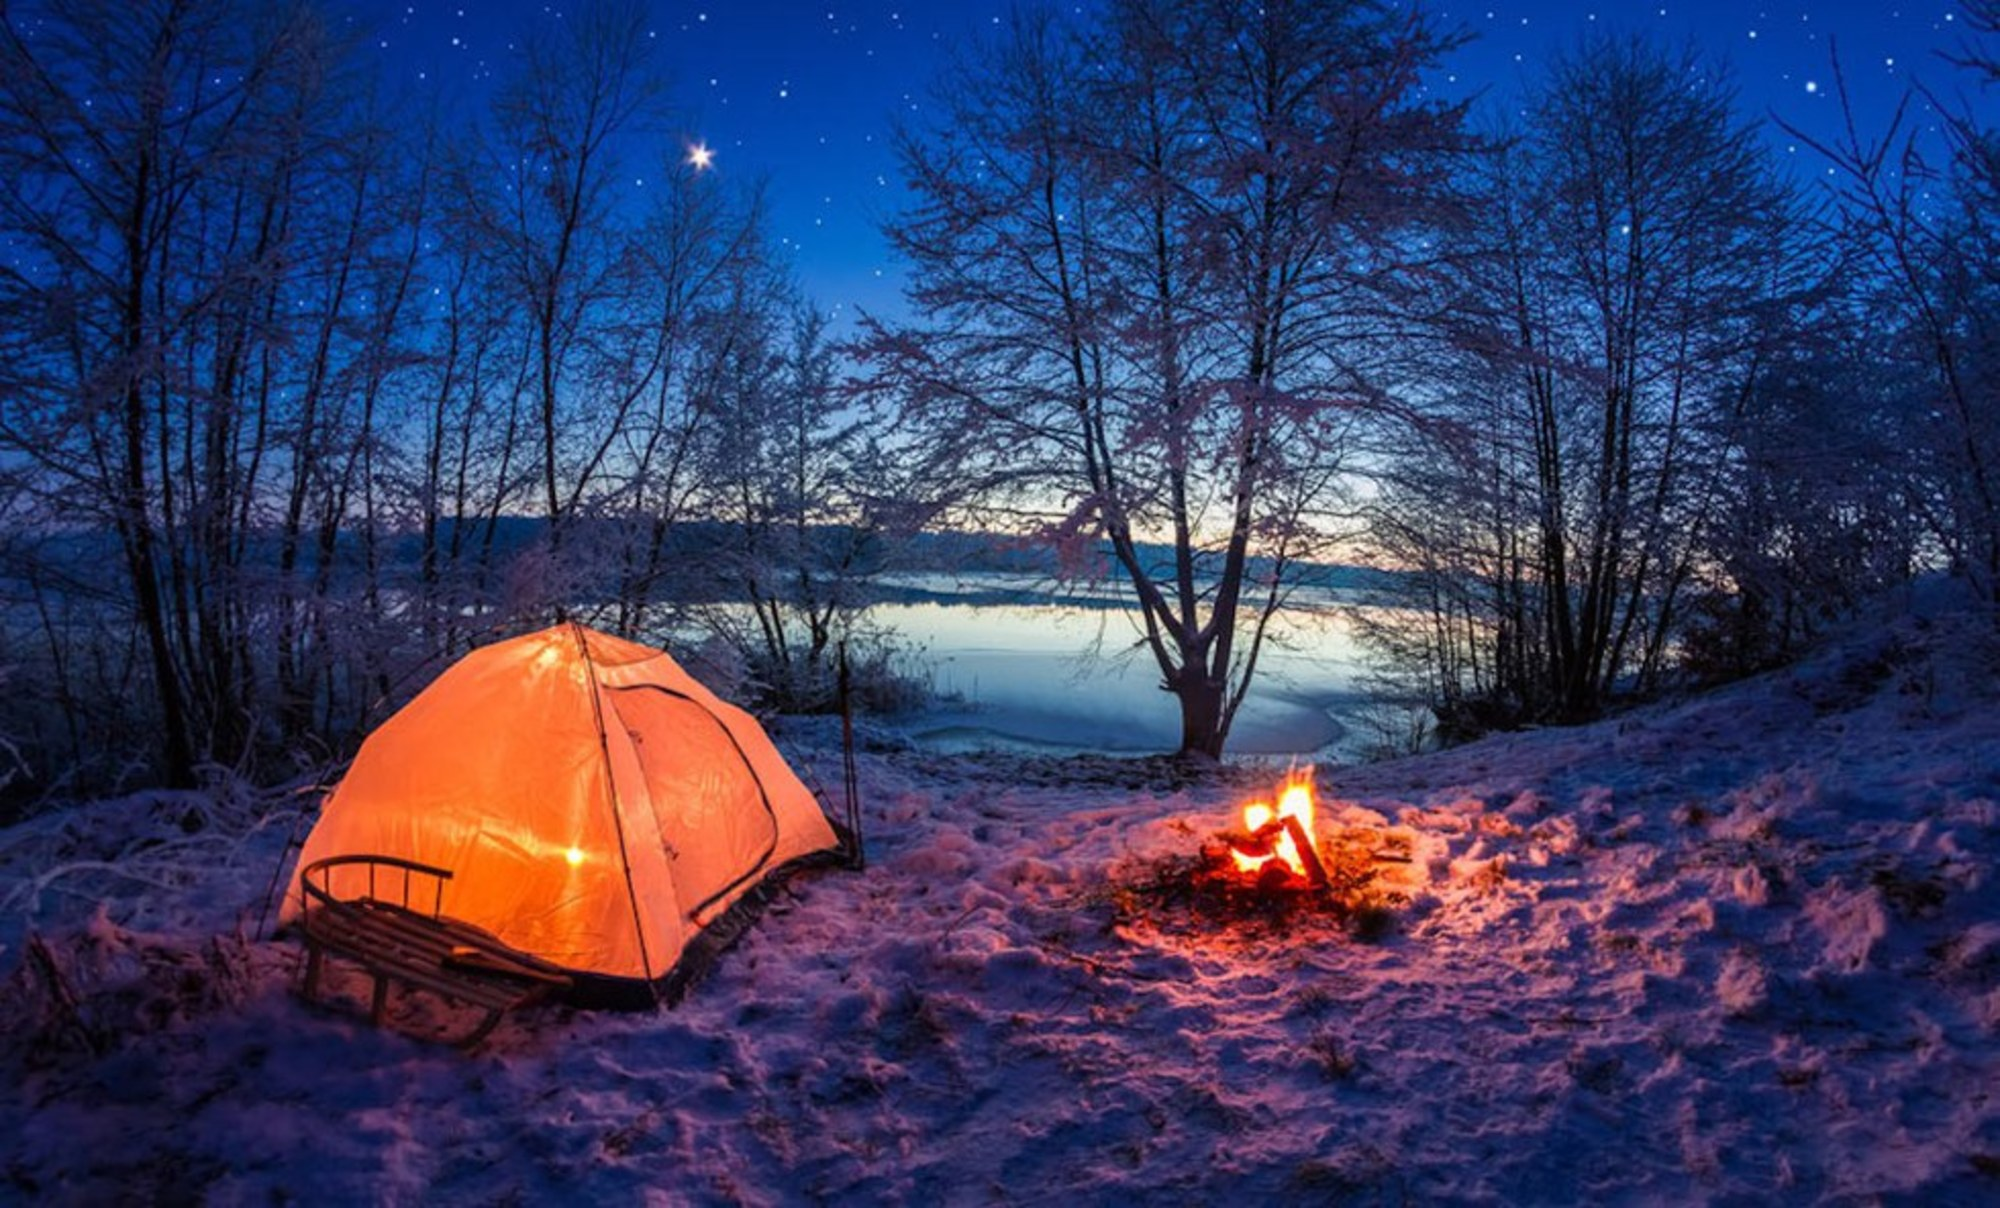 How To Insulate A Tent For Winter Camping: 9 Tips To Know